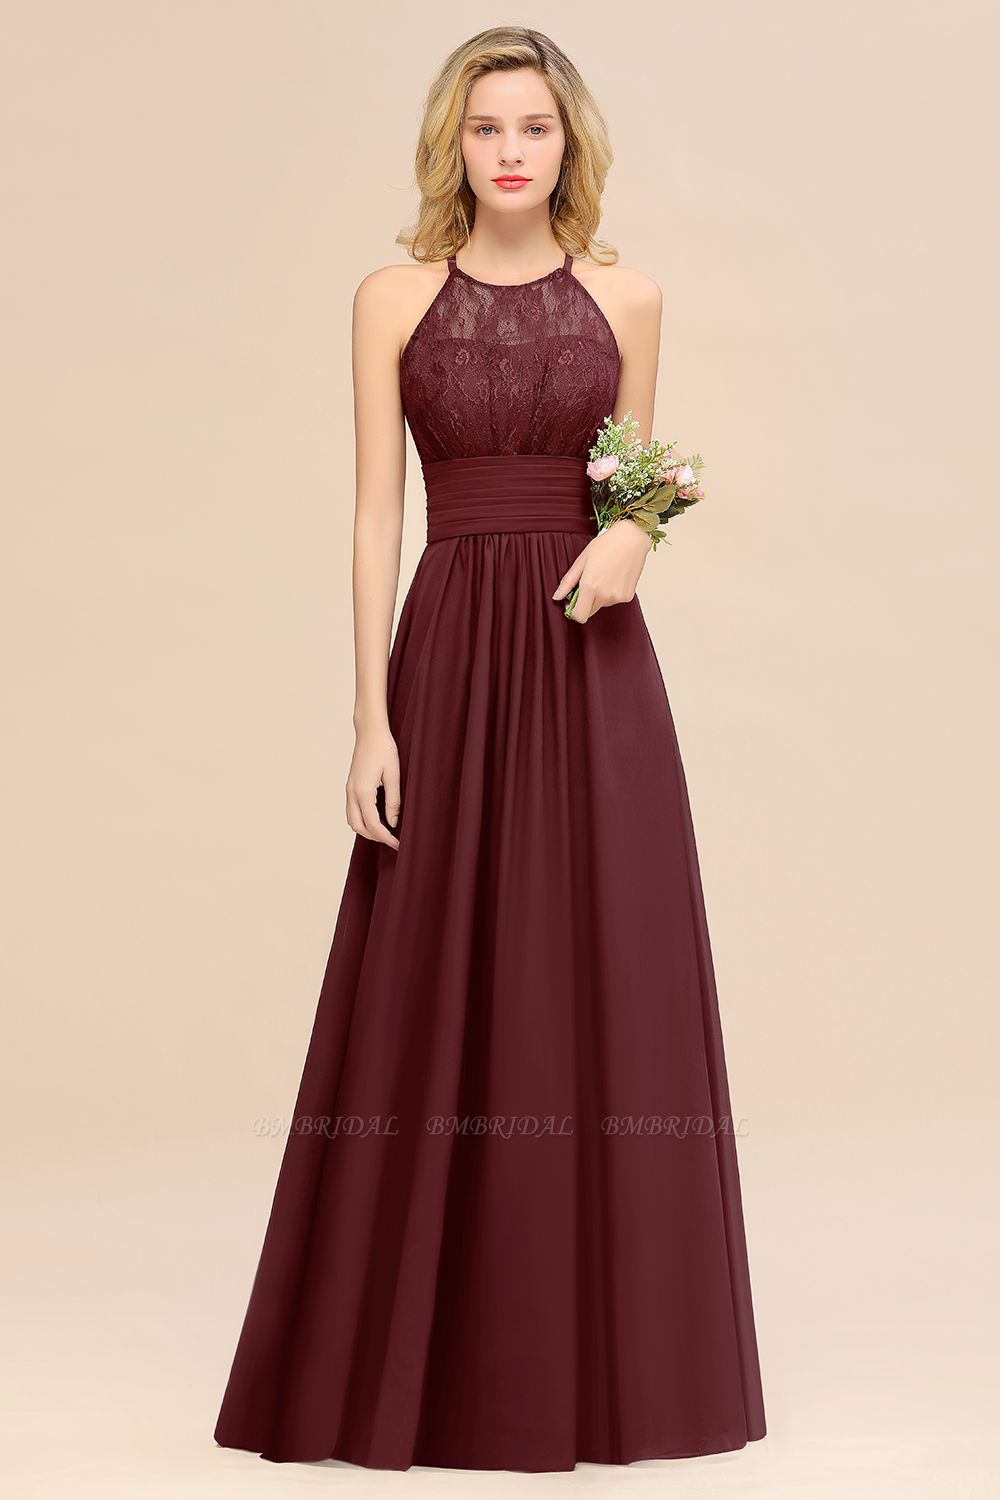 Elegant Halter Ruffles Sleeveless Grape Lace Bridesmaid Dresses Cheap